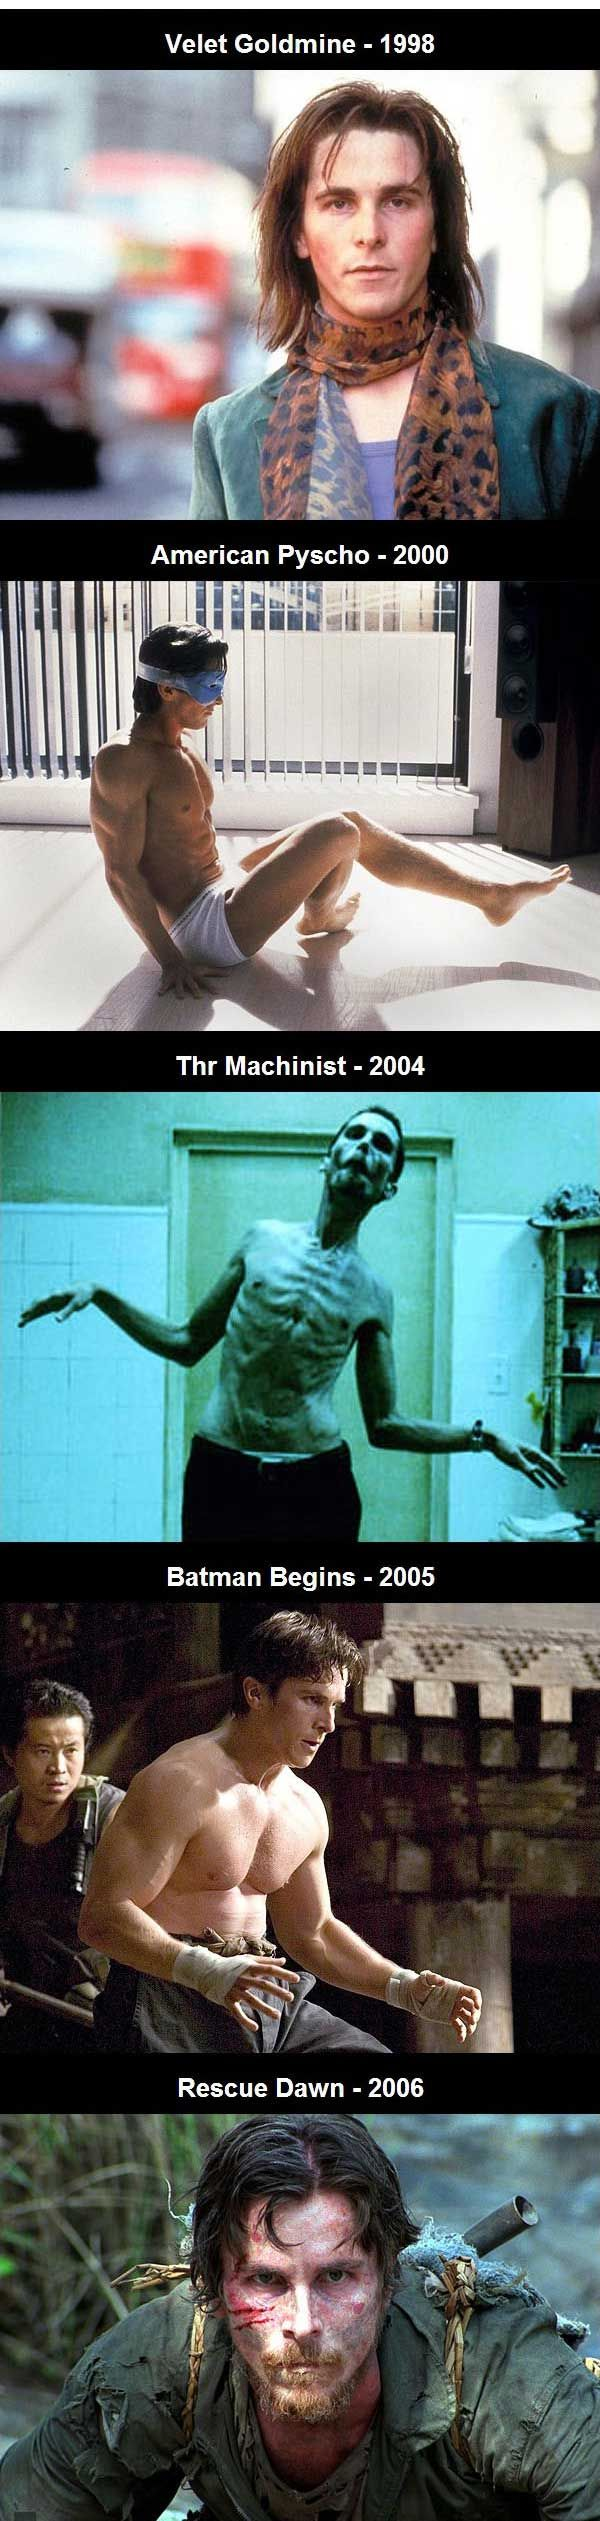 Christian Bale body transformations throughout the years. (12 Pics)!